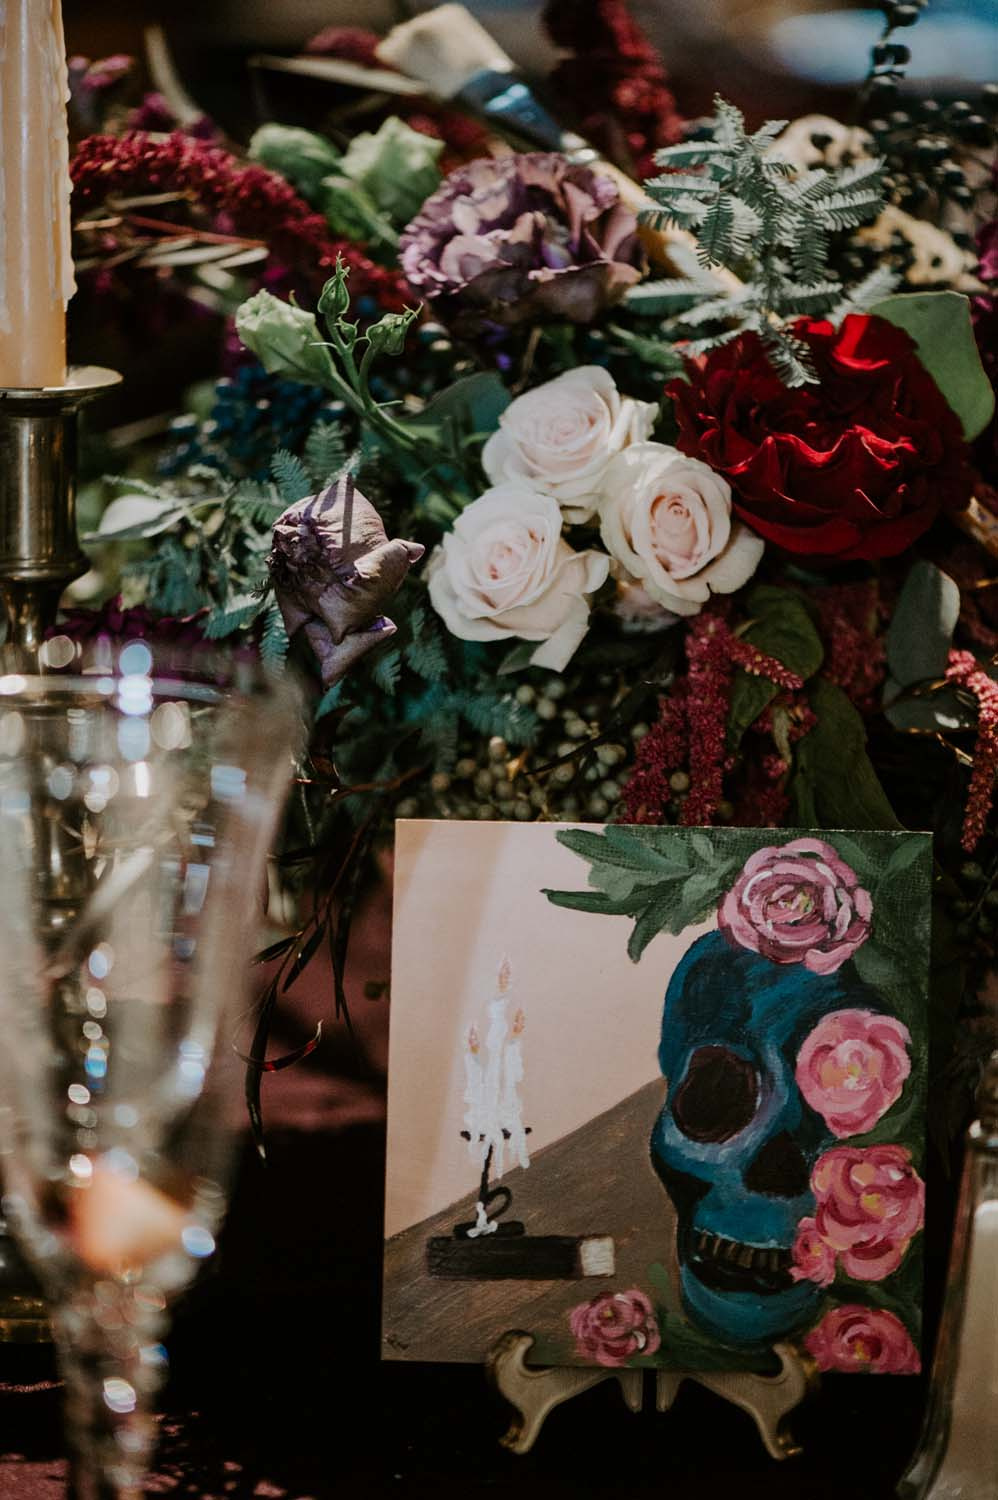 darkly-romantic-wedding-flowers-candis-floral-creations_12